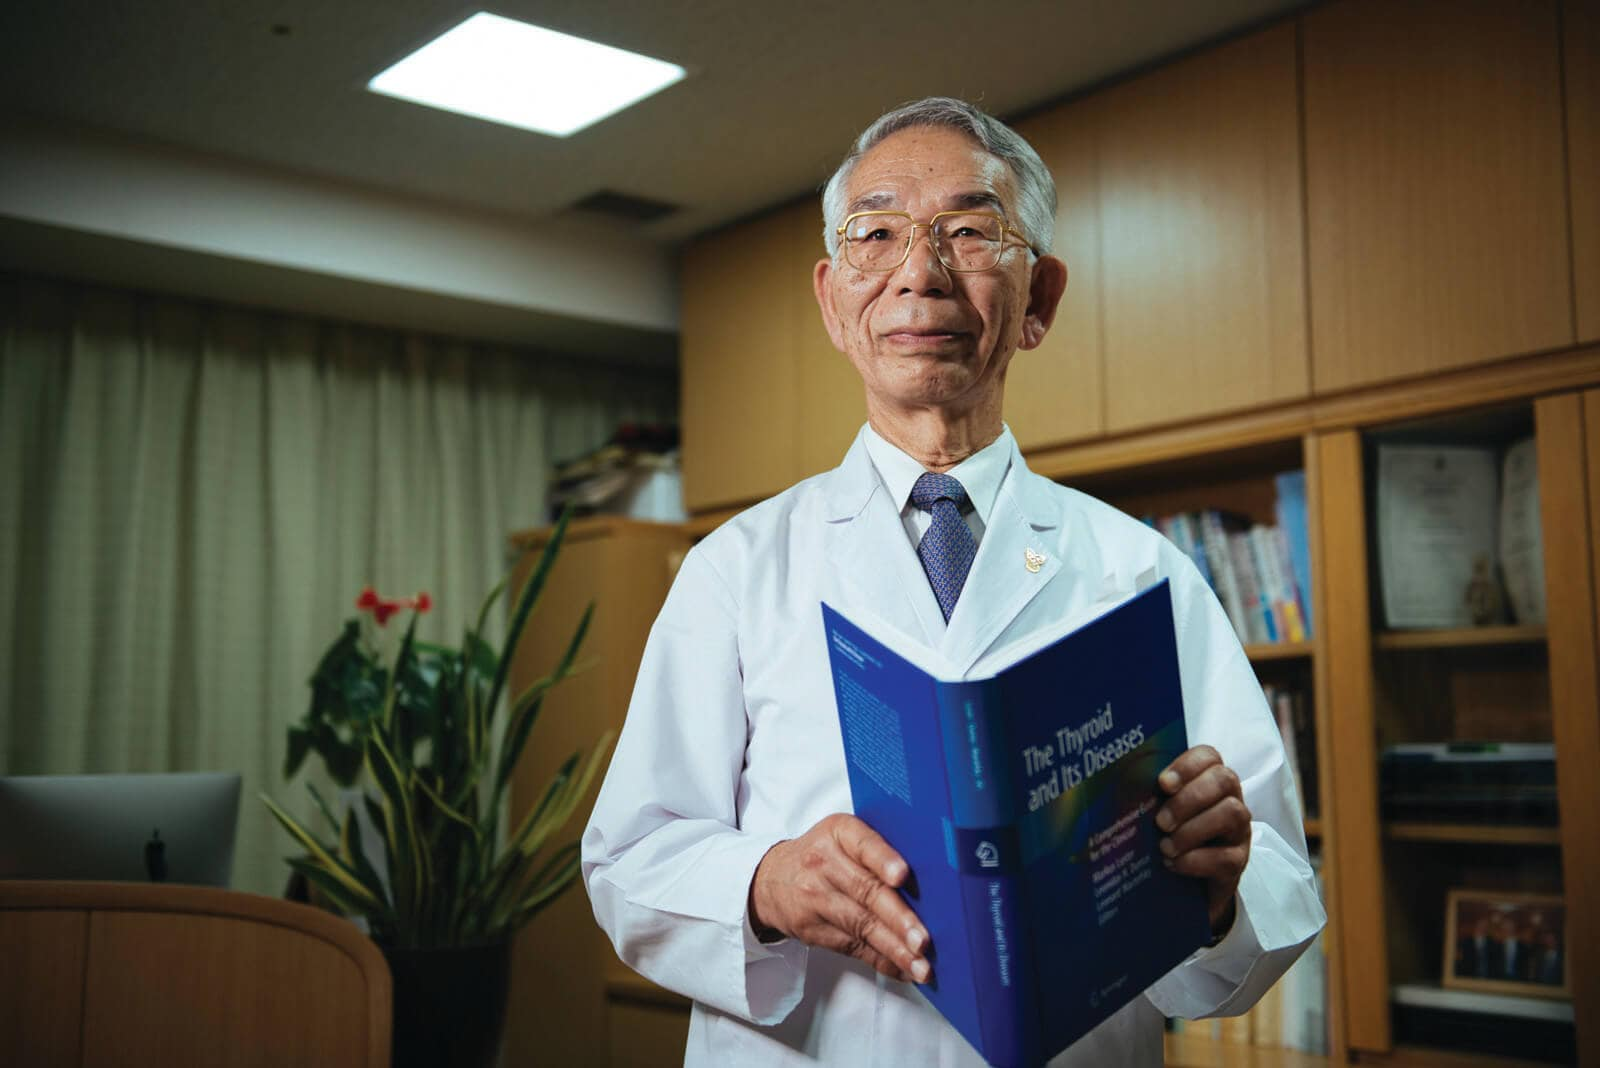 Dr Akira Miyauchi, a leading figure in endocrine surgery, tells Roche Diagram healthcare magazine why active survelliance almost always results in better patient outcomes.